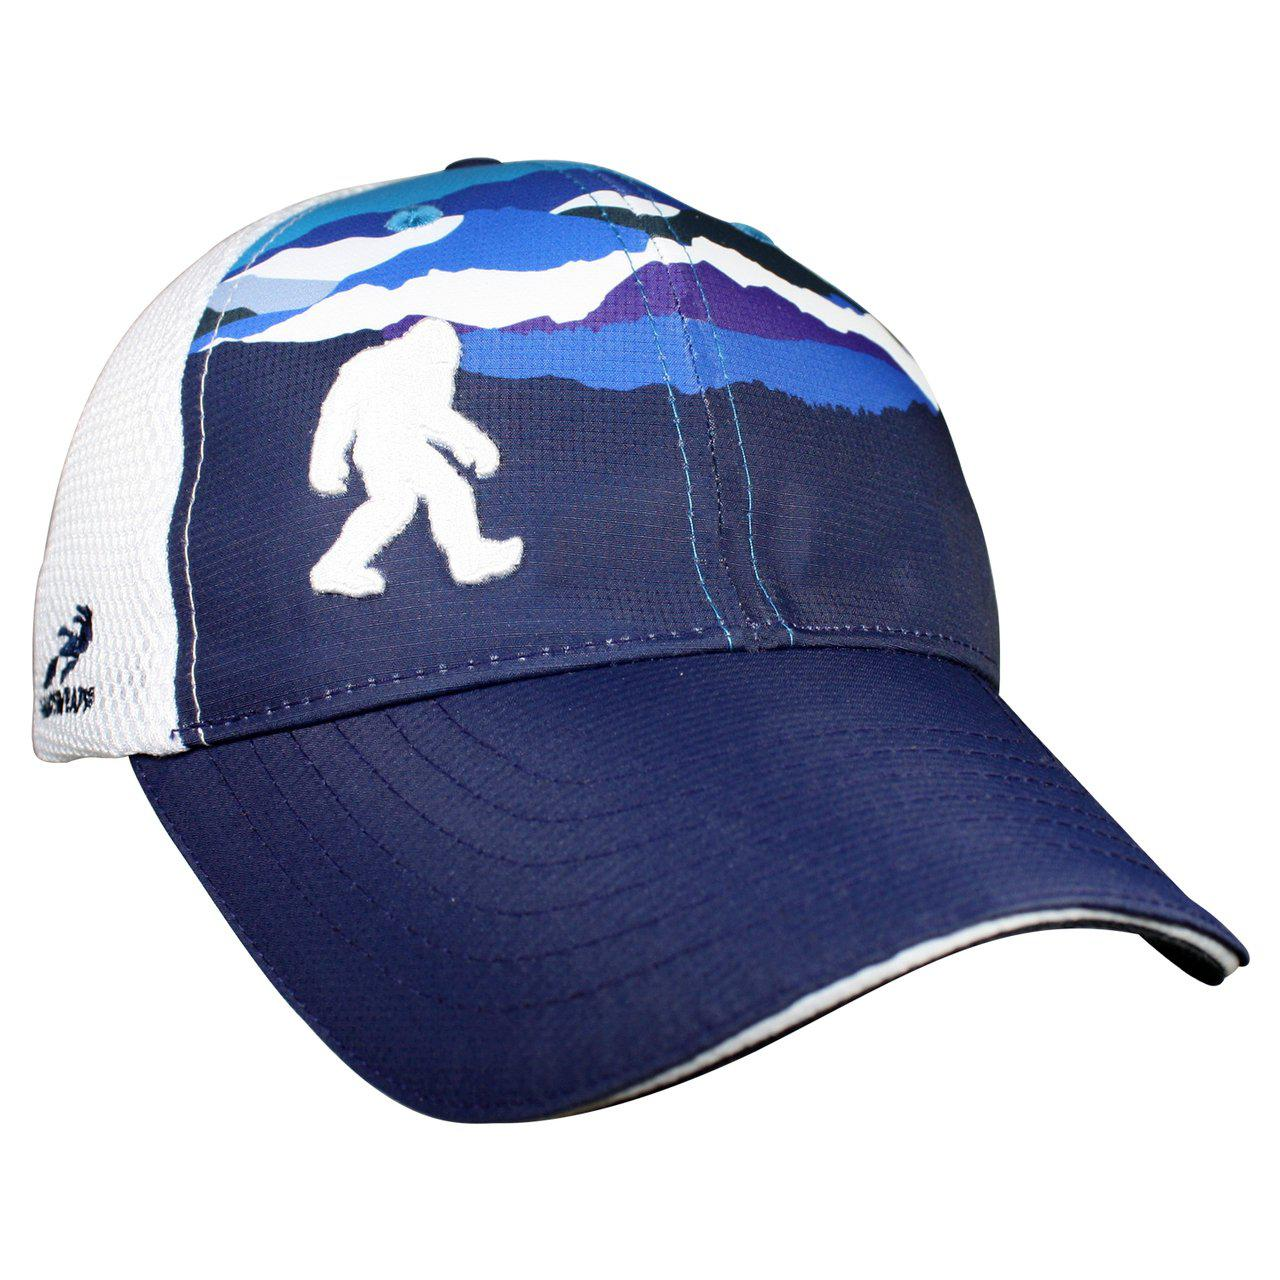 Headsweats Bigfoot Trucker Hat